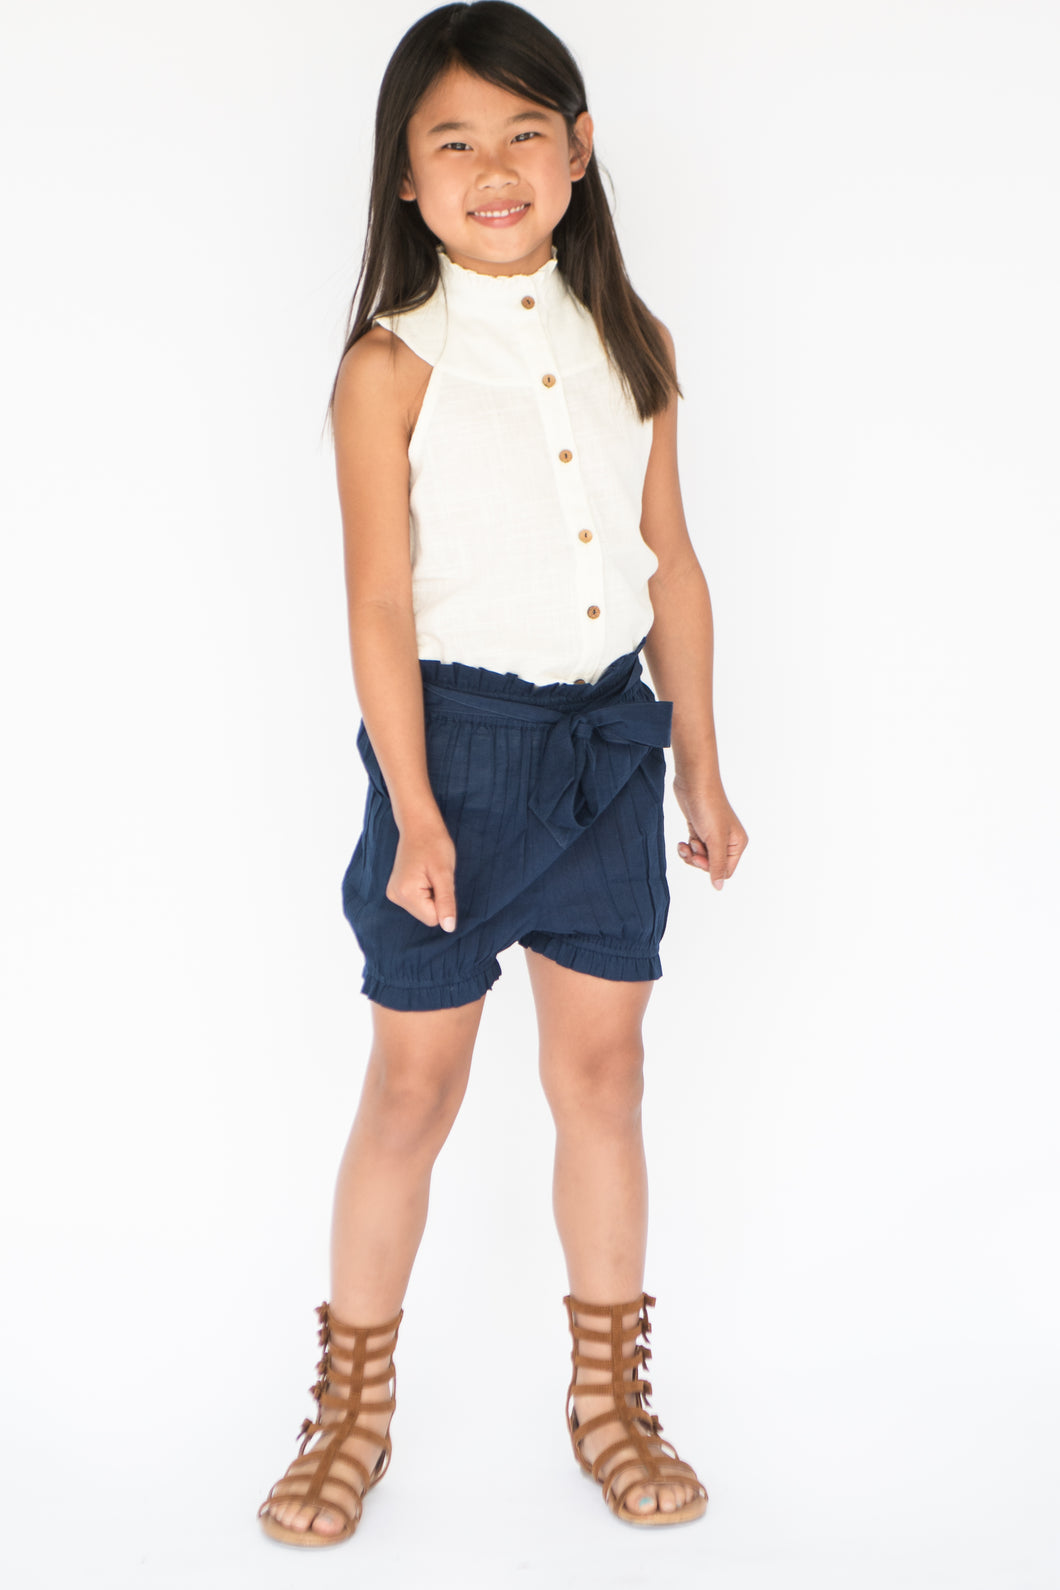 Navy-Blue High Waist Paper Bag style Shorts and Frill Blouse - Kids Wholesale Boutique Clothing, Dress - Girls Dresses, Yo Baby Wholesale - Yo Baby